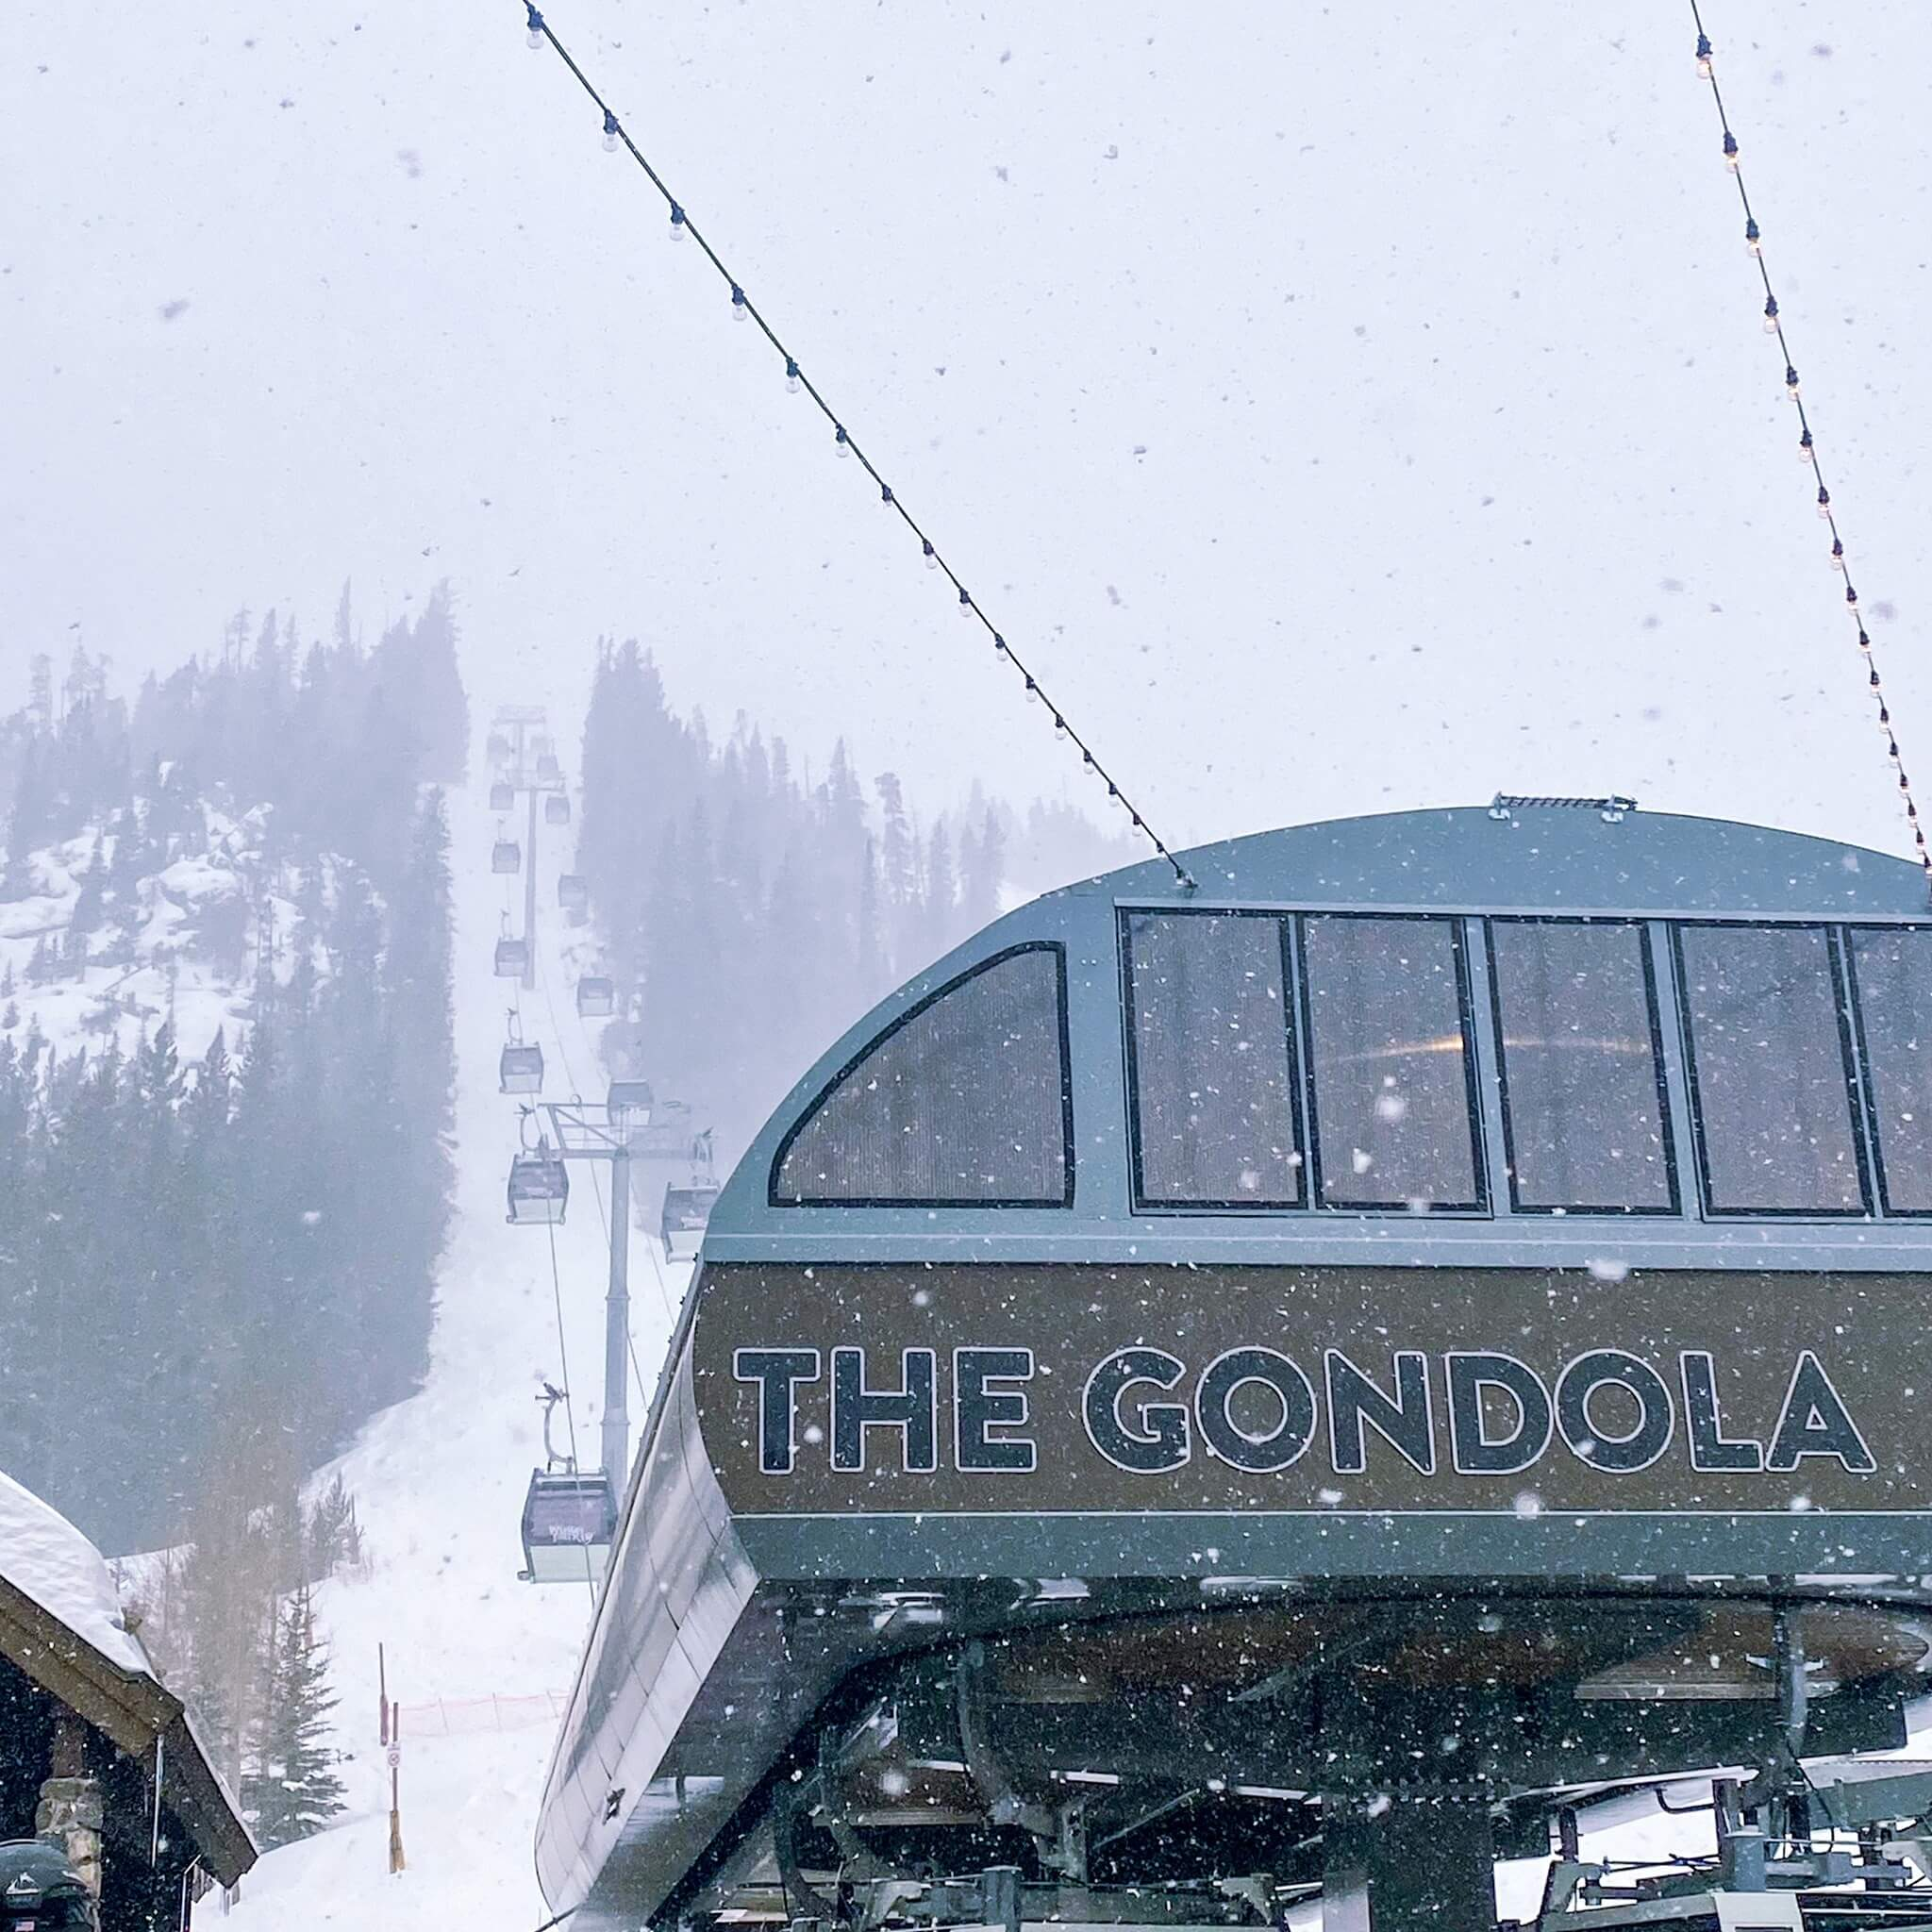 skiing in March at Winter Park Resort means powder